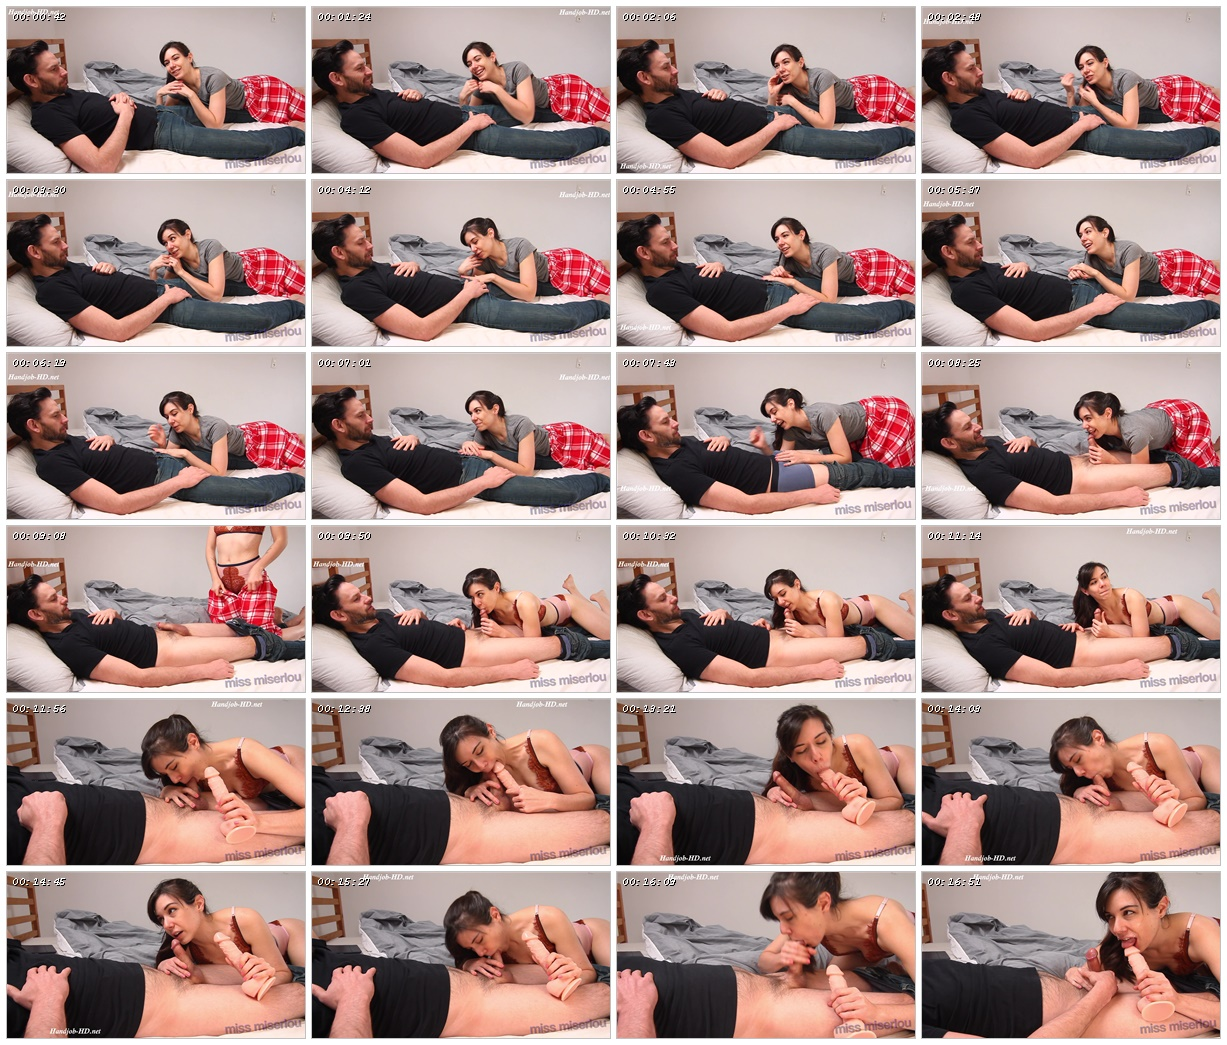 My double dick fantasy – story, facial – Miss Miserlou_scrlist